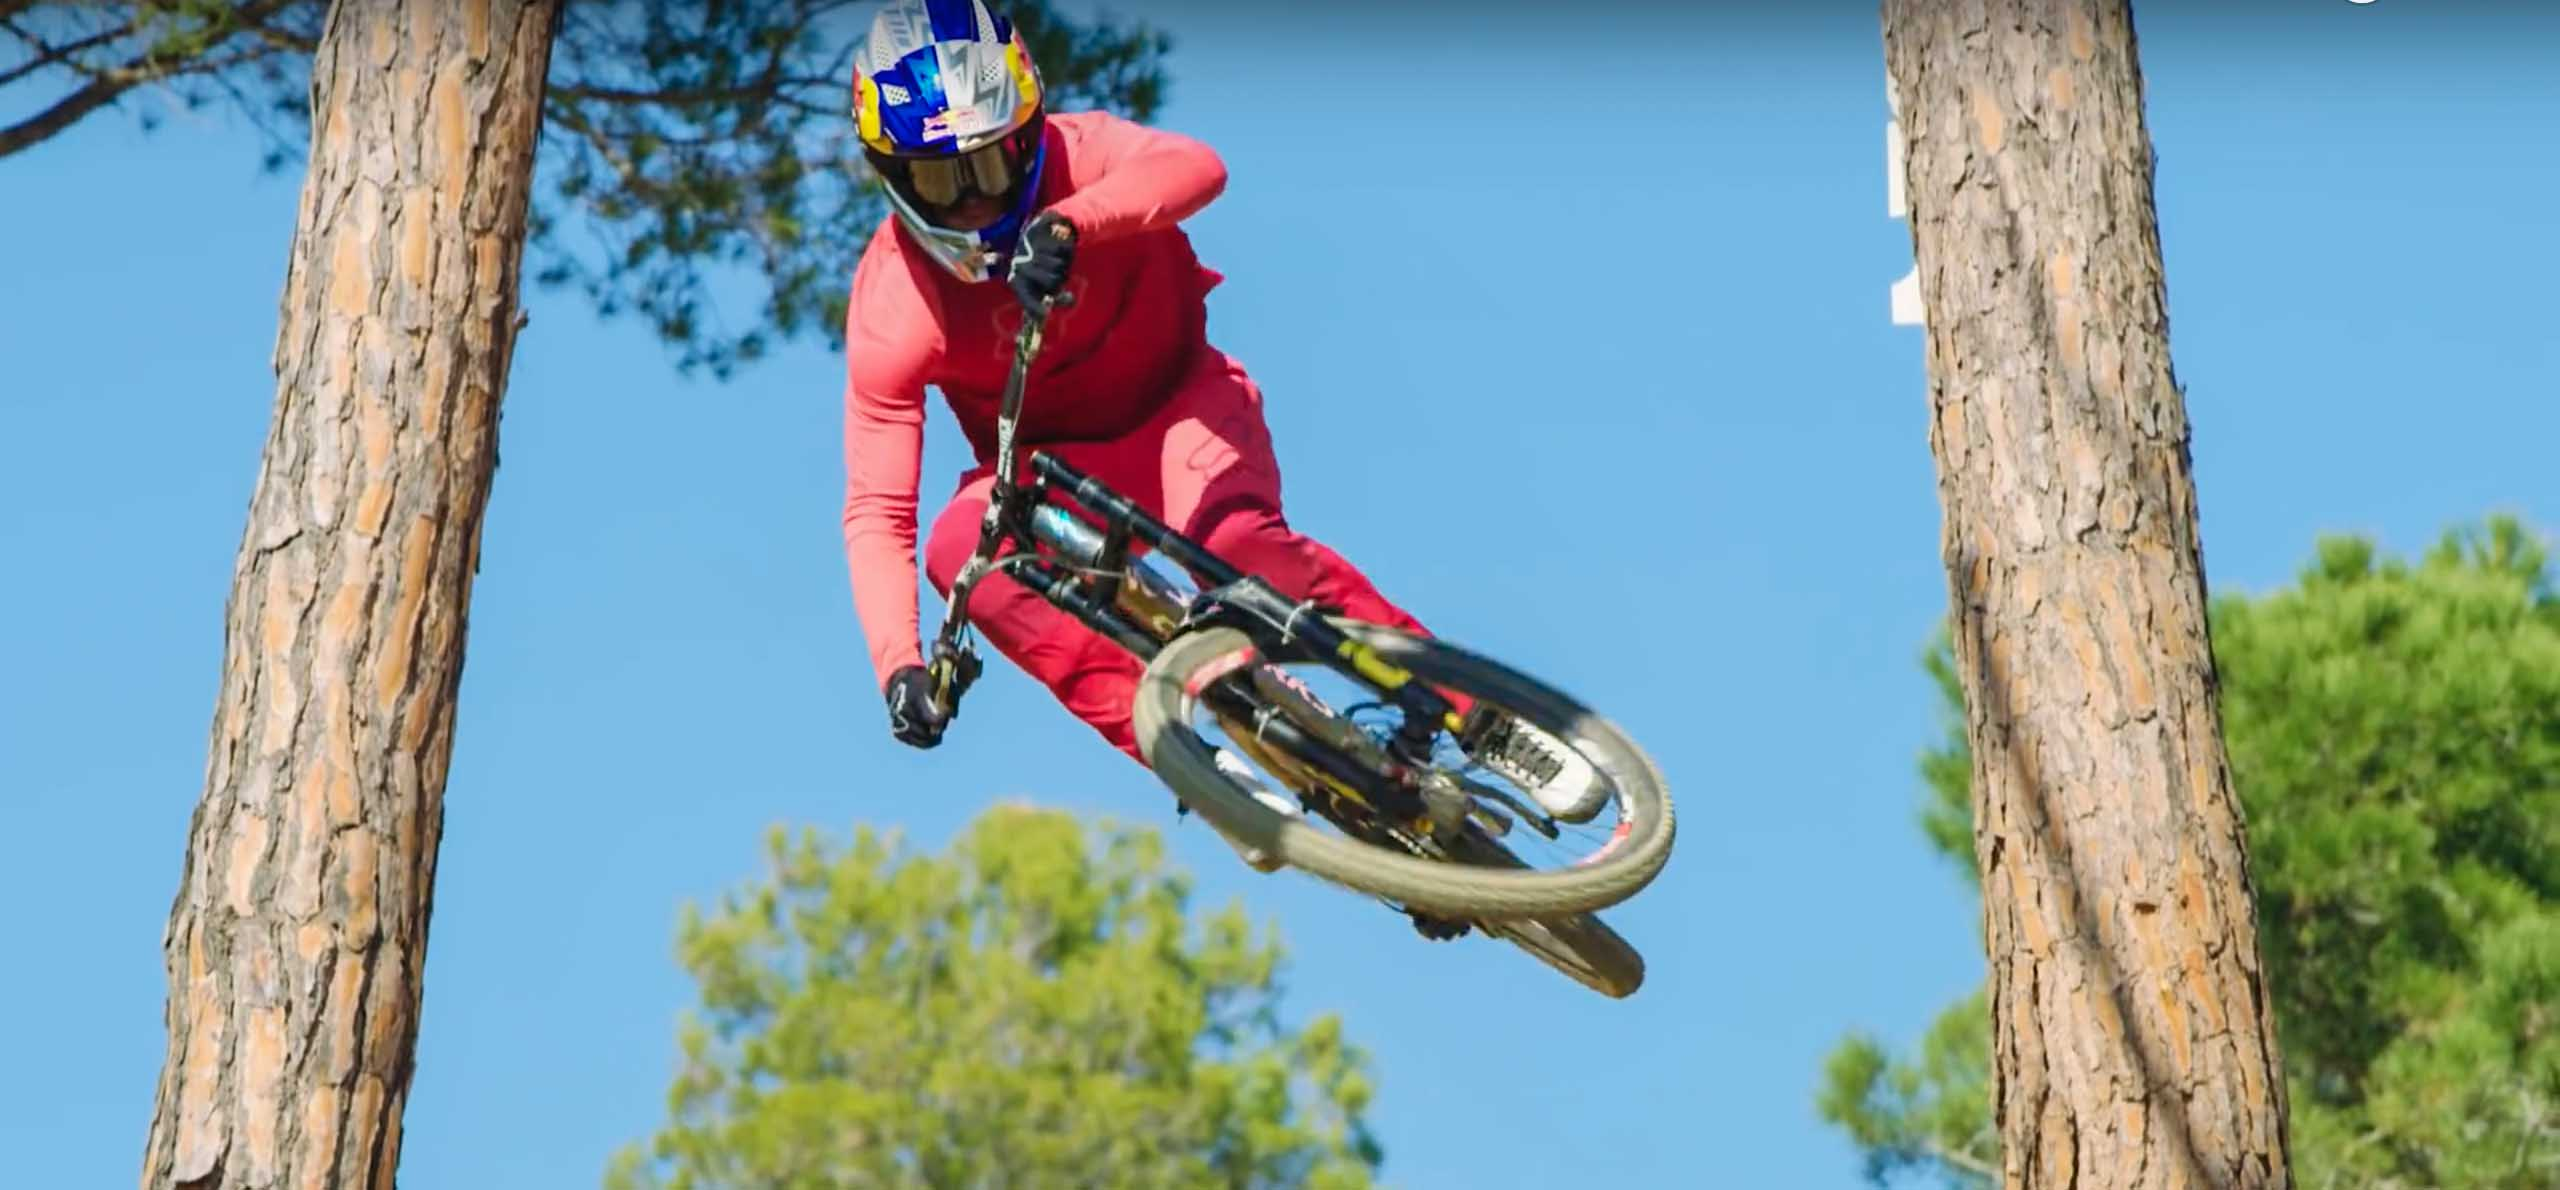 MADE FOR YOUR RIDE – EPISODE 2 LOIC BRUNI - [R]evolution MTB